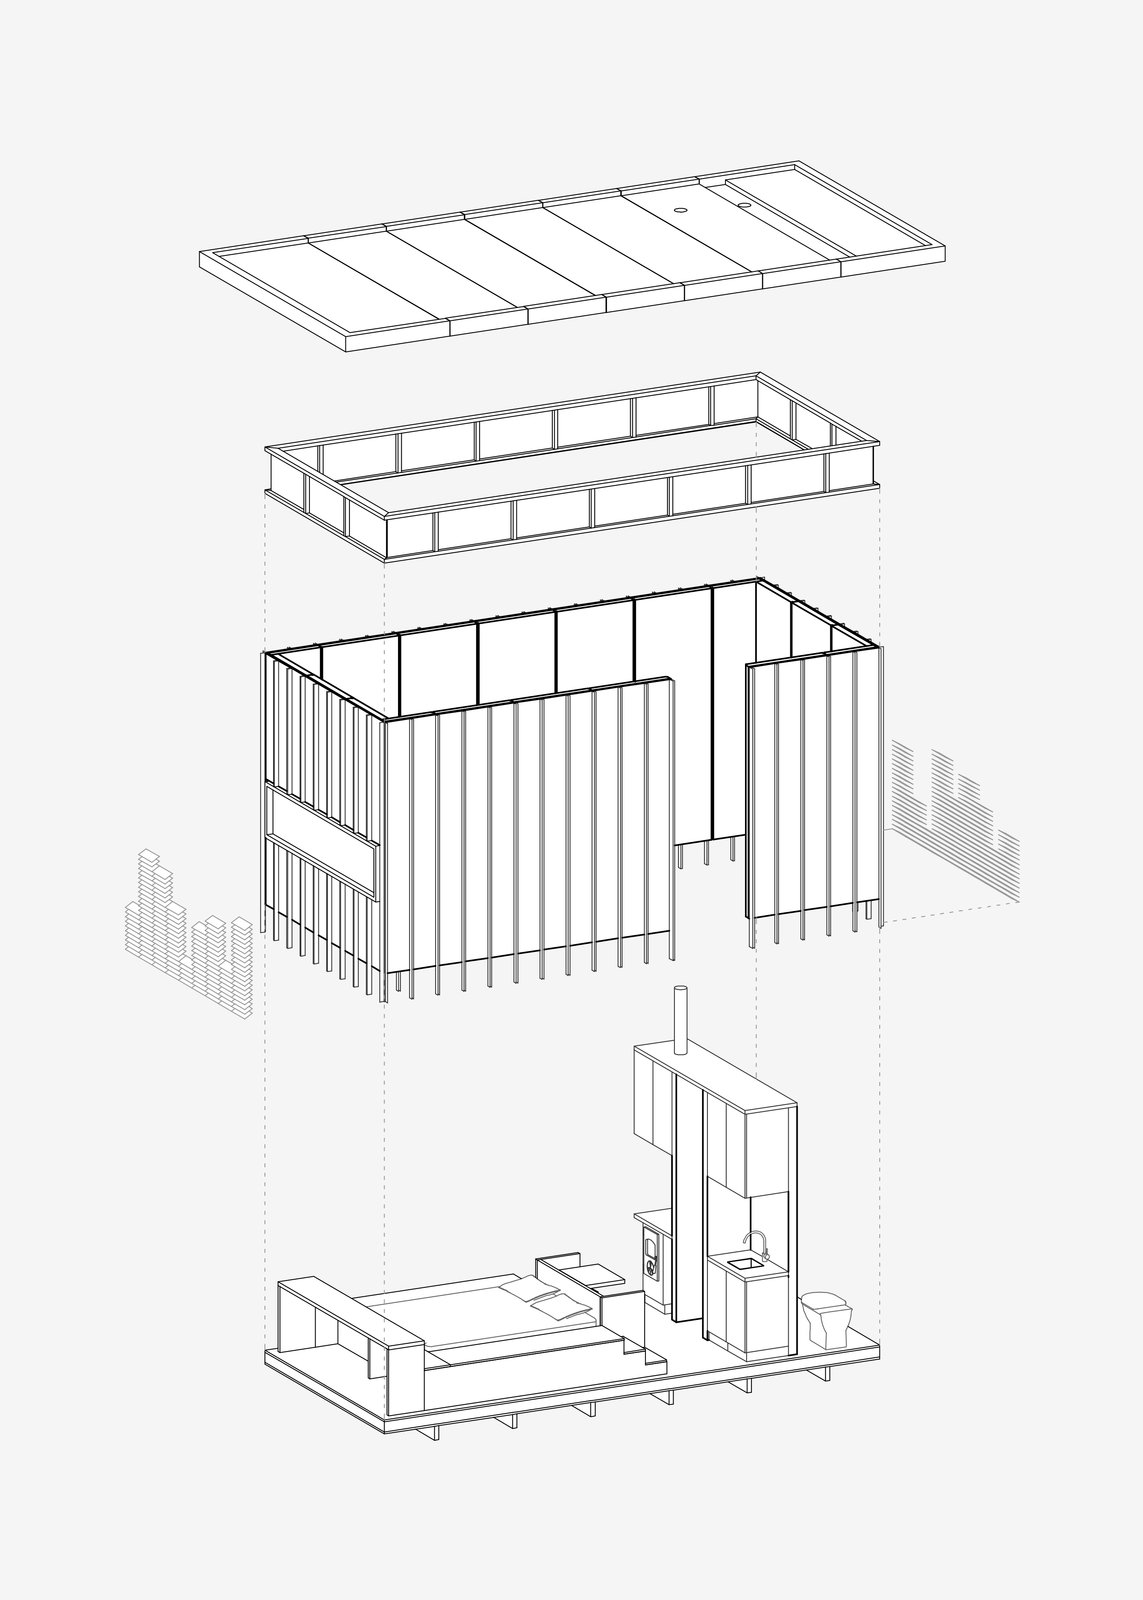 This axonometric drawing simply explains the building components which create the cabin from the wood